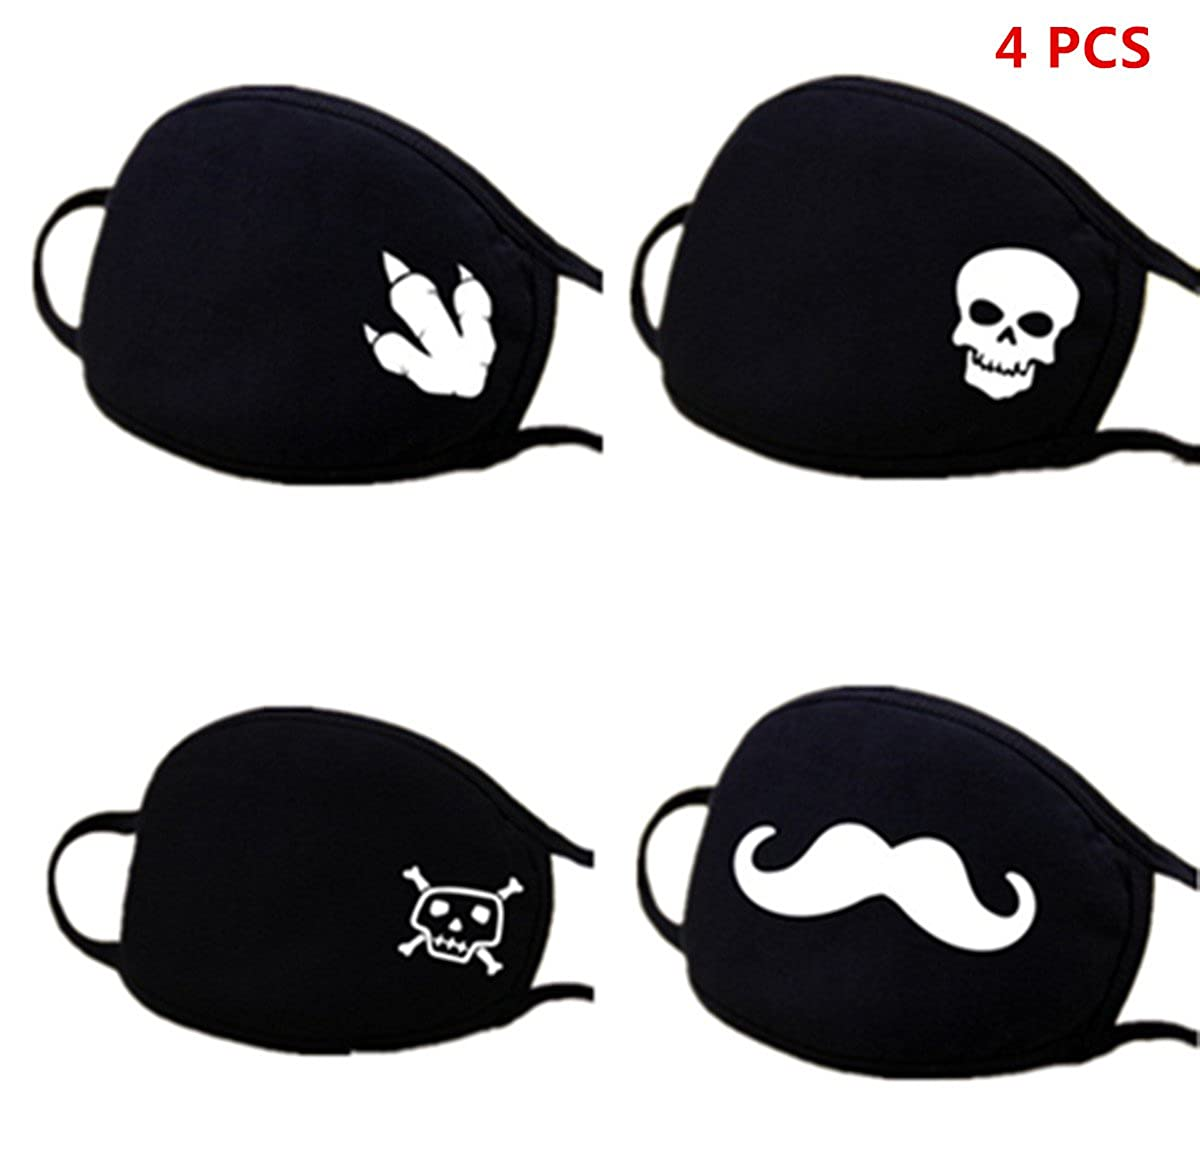 Men Women Anti-Dust Anime Mouth Mask Face Emoticon Earloop Cotton Surgical Mask FIST BUMP Dept